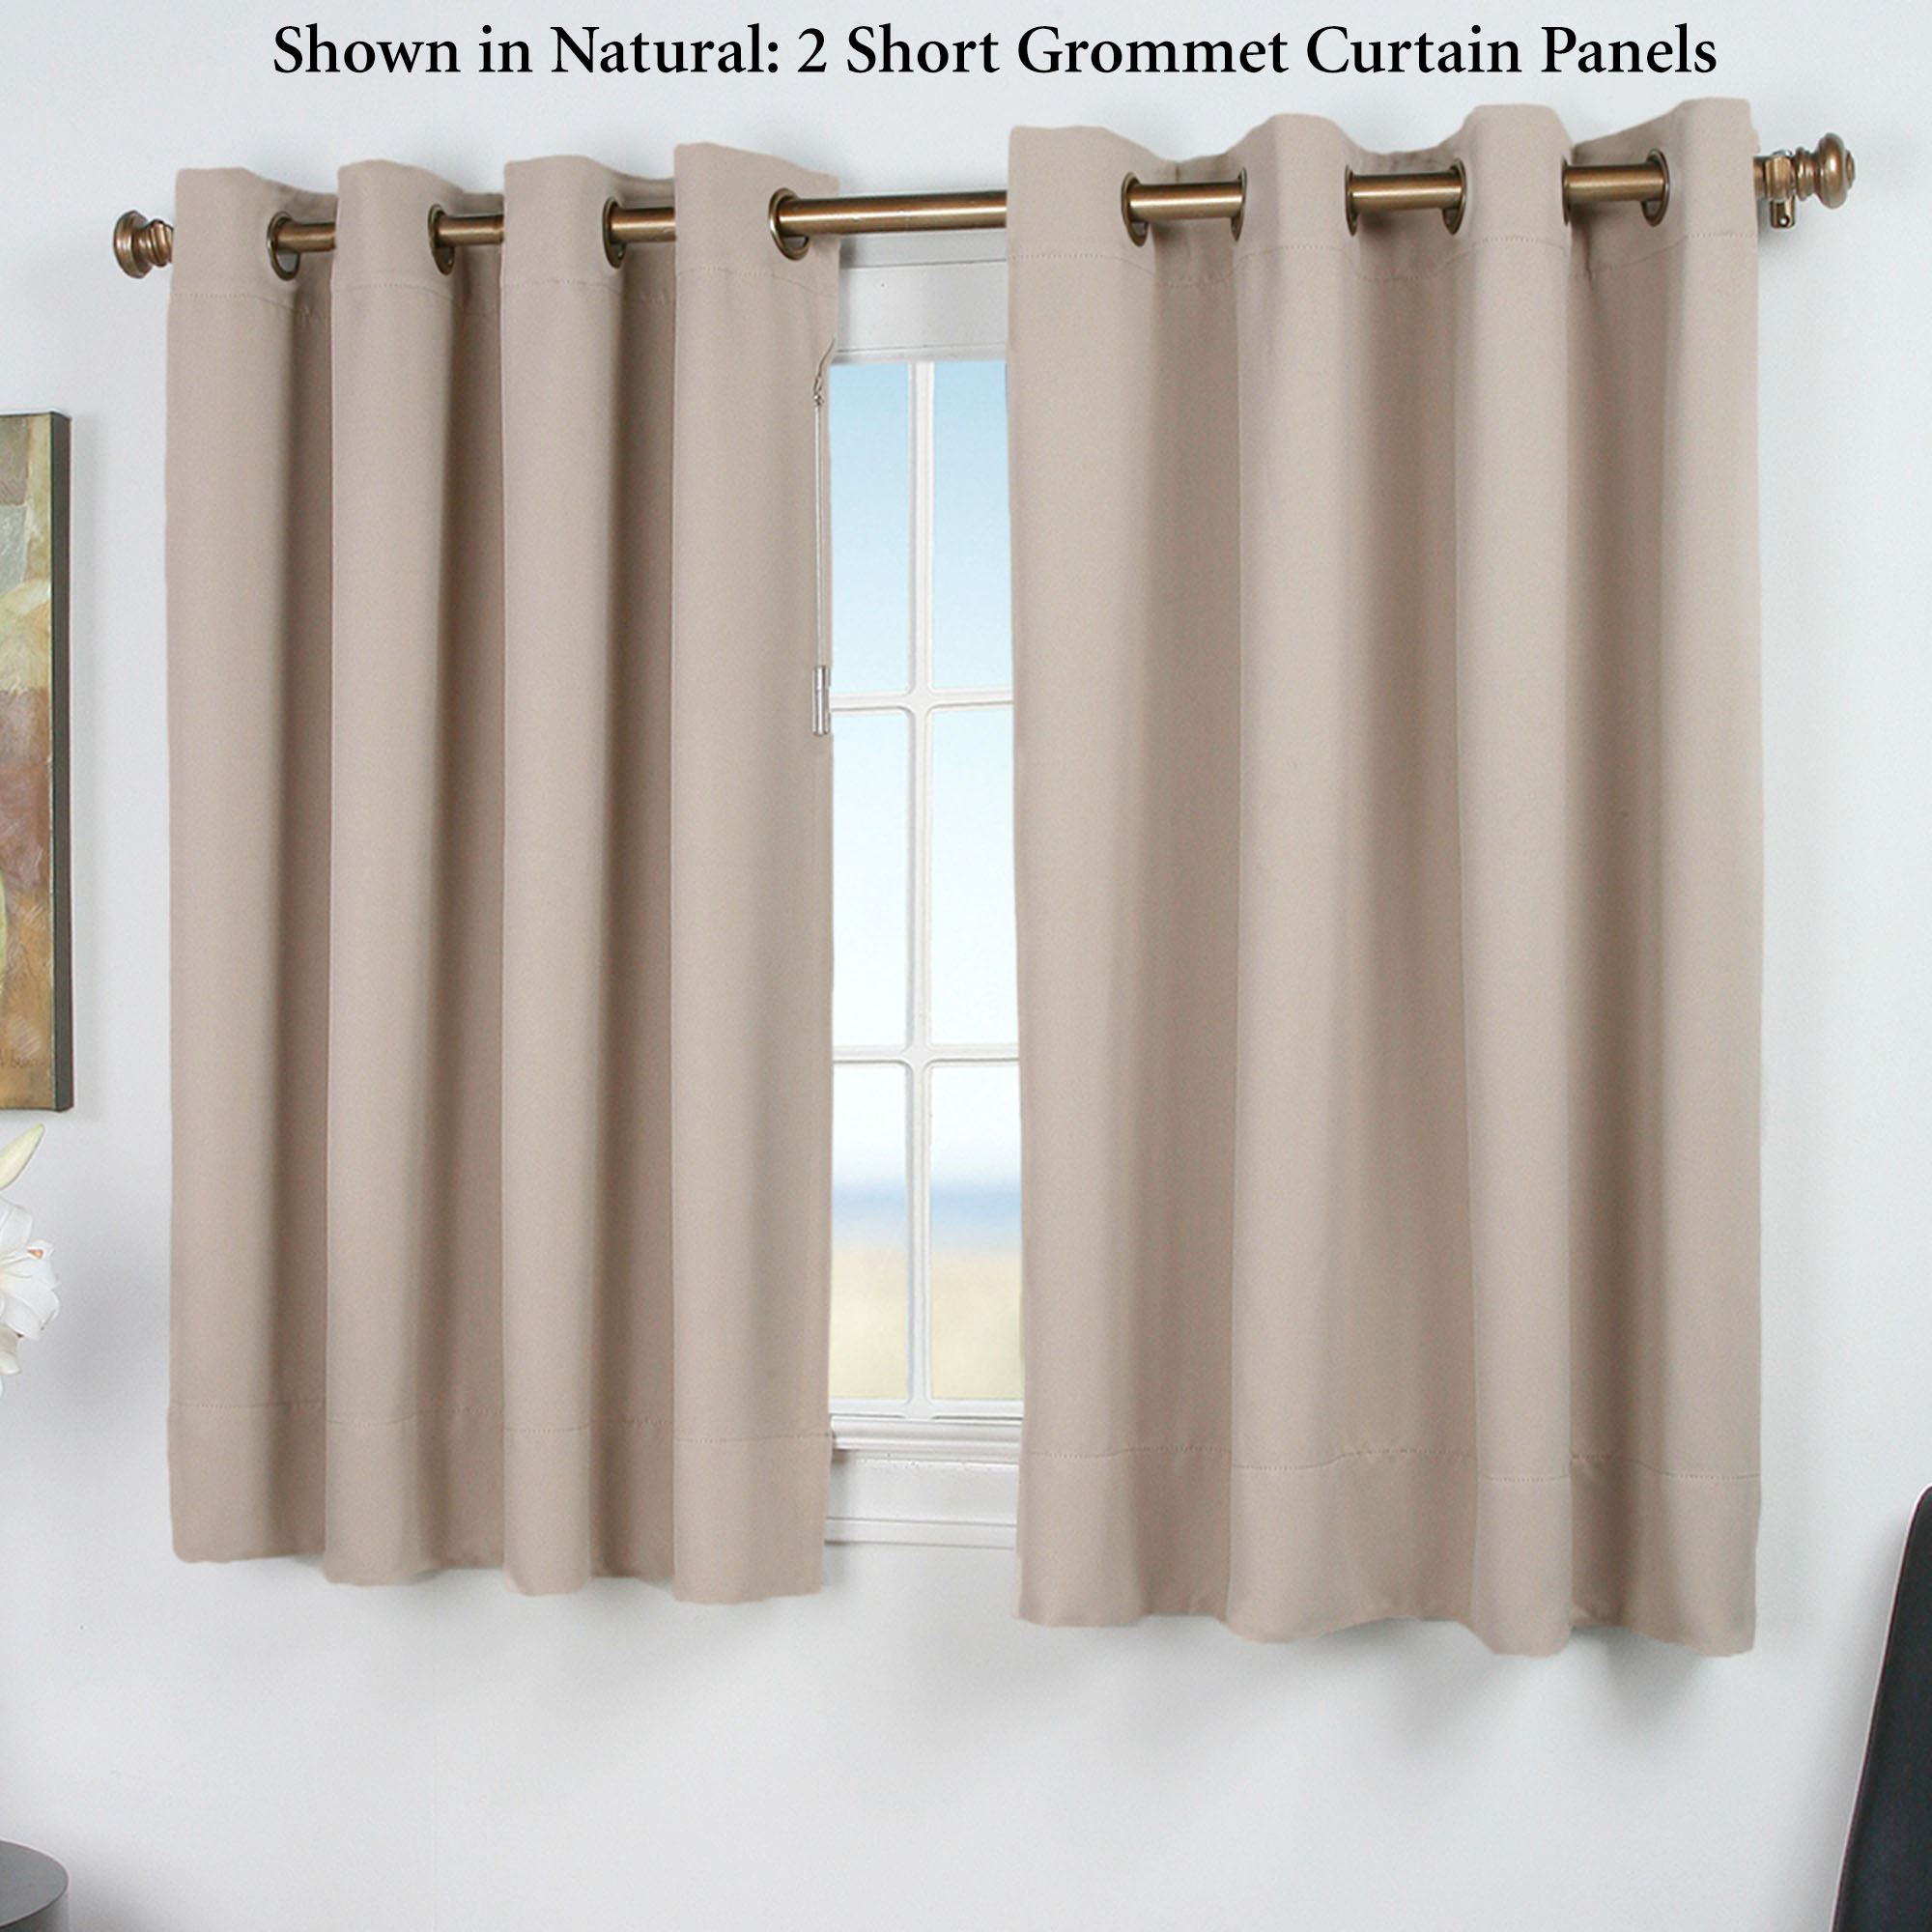 breathable reviews pdx panels curtain wayfair dambrosio linen bronx curtains ivy nickel blackout grommet window sheers mixed treatments